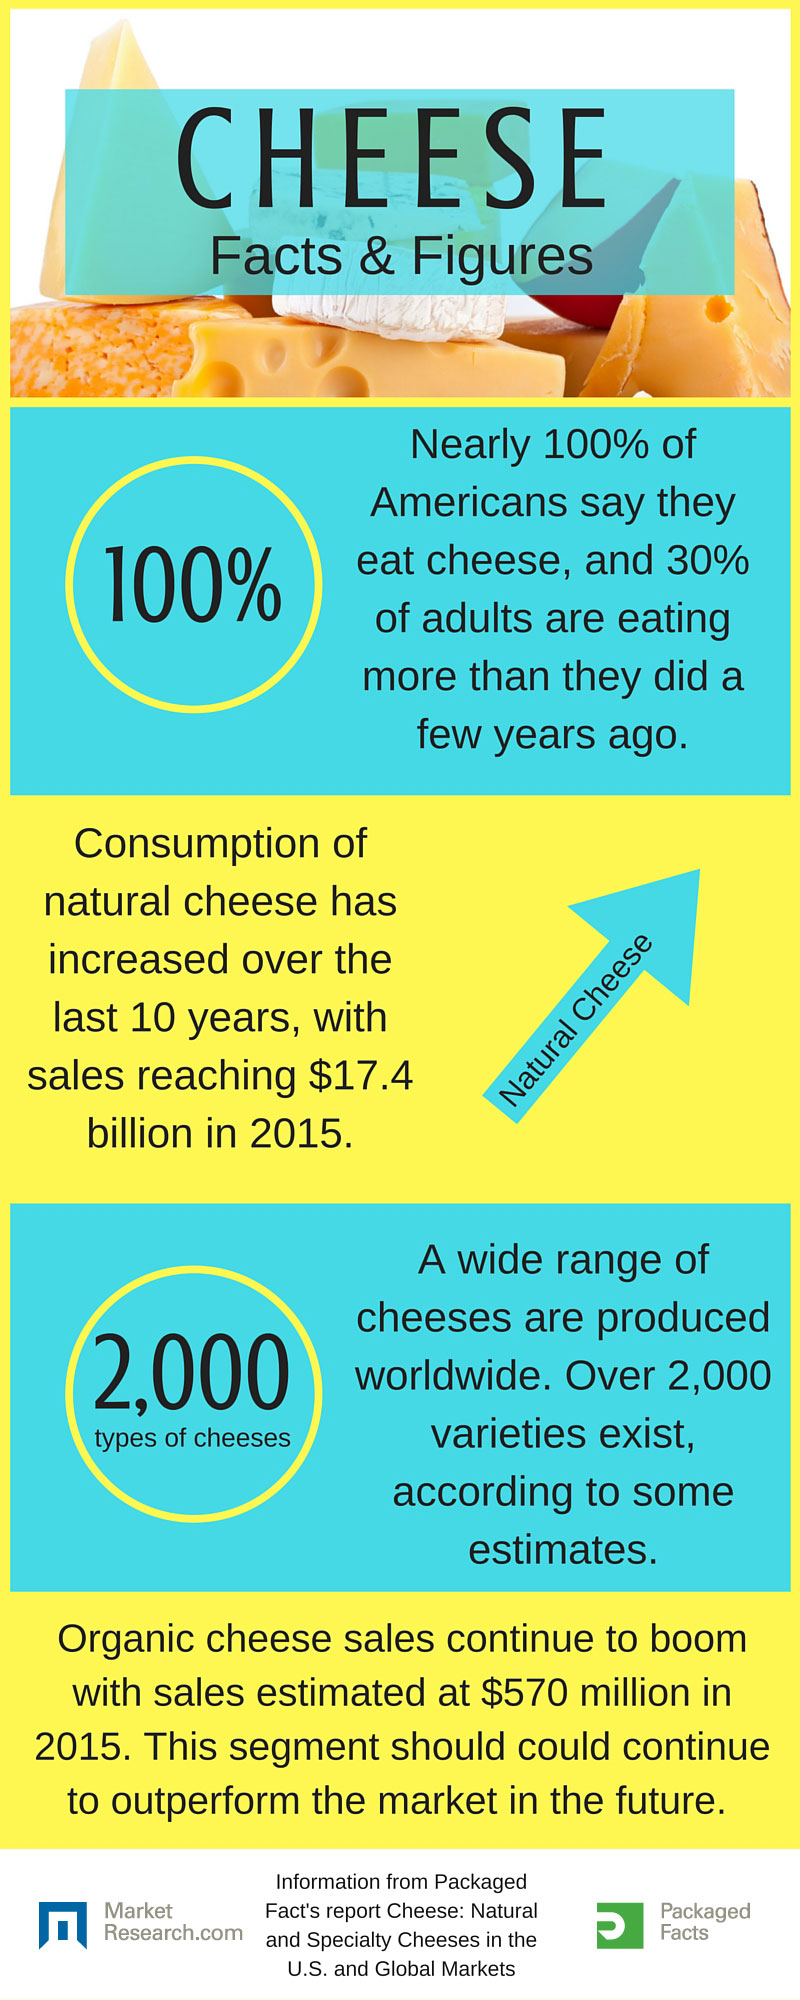 marketResearch.com-Cheese-Infographic.jpg